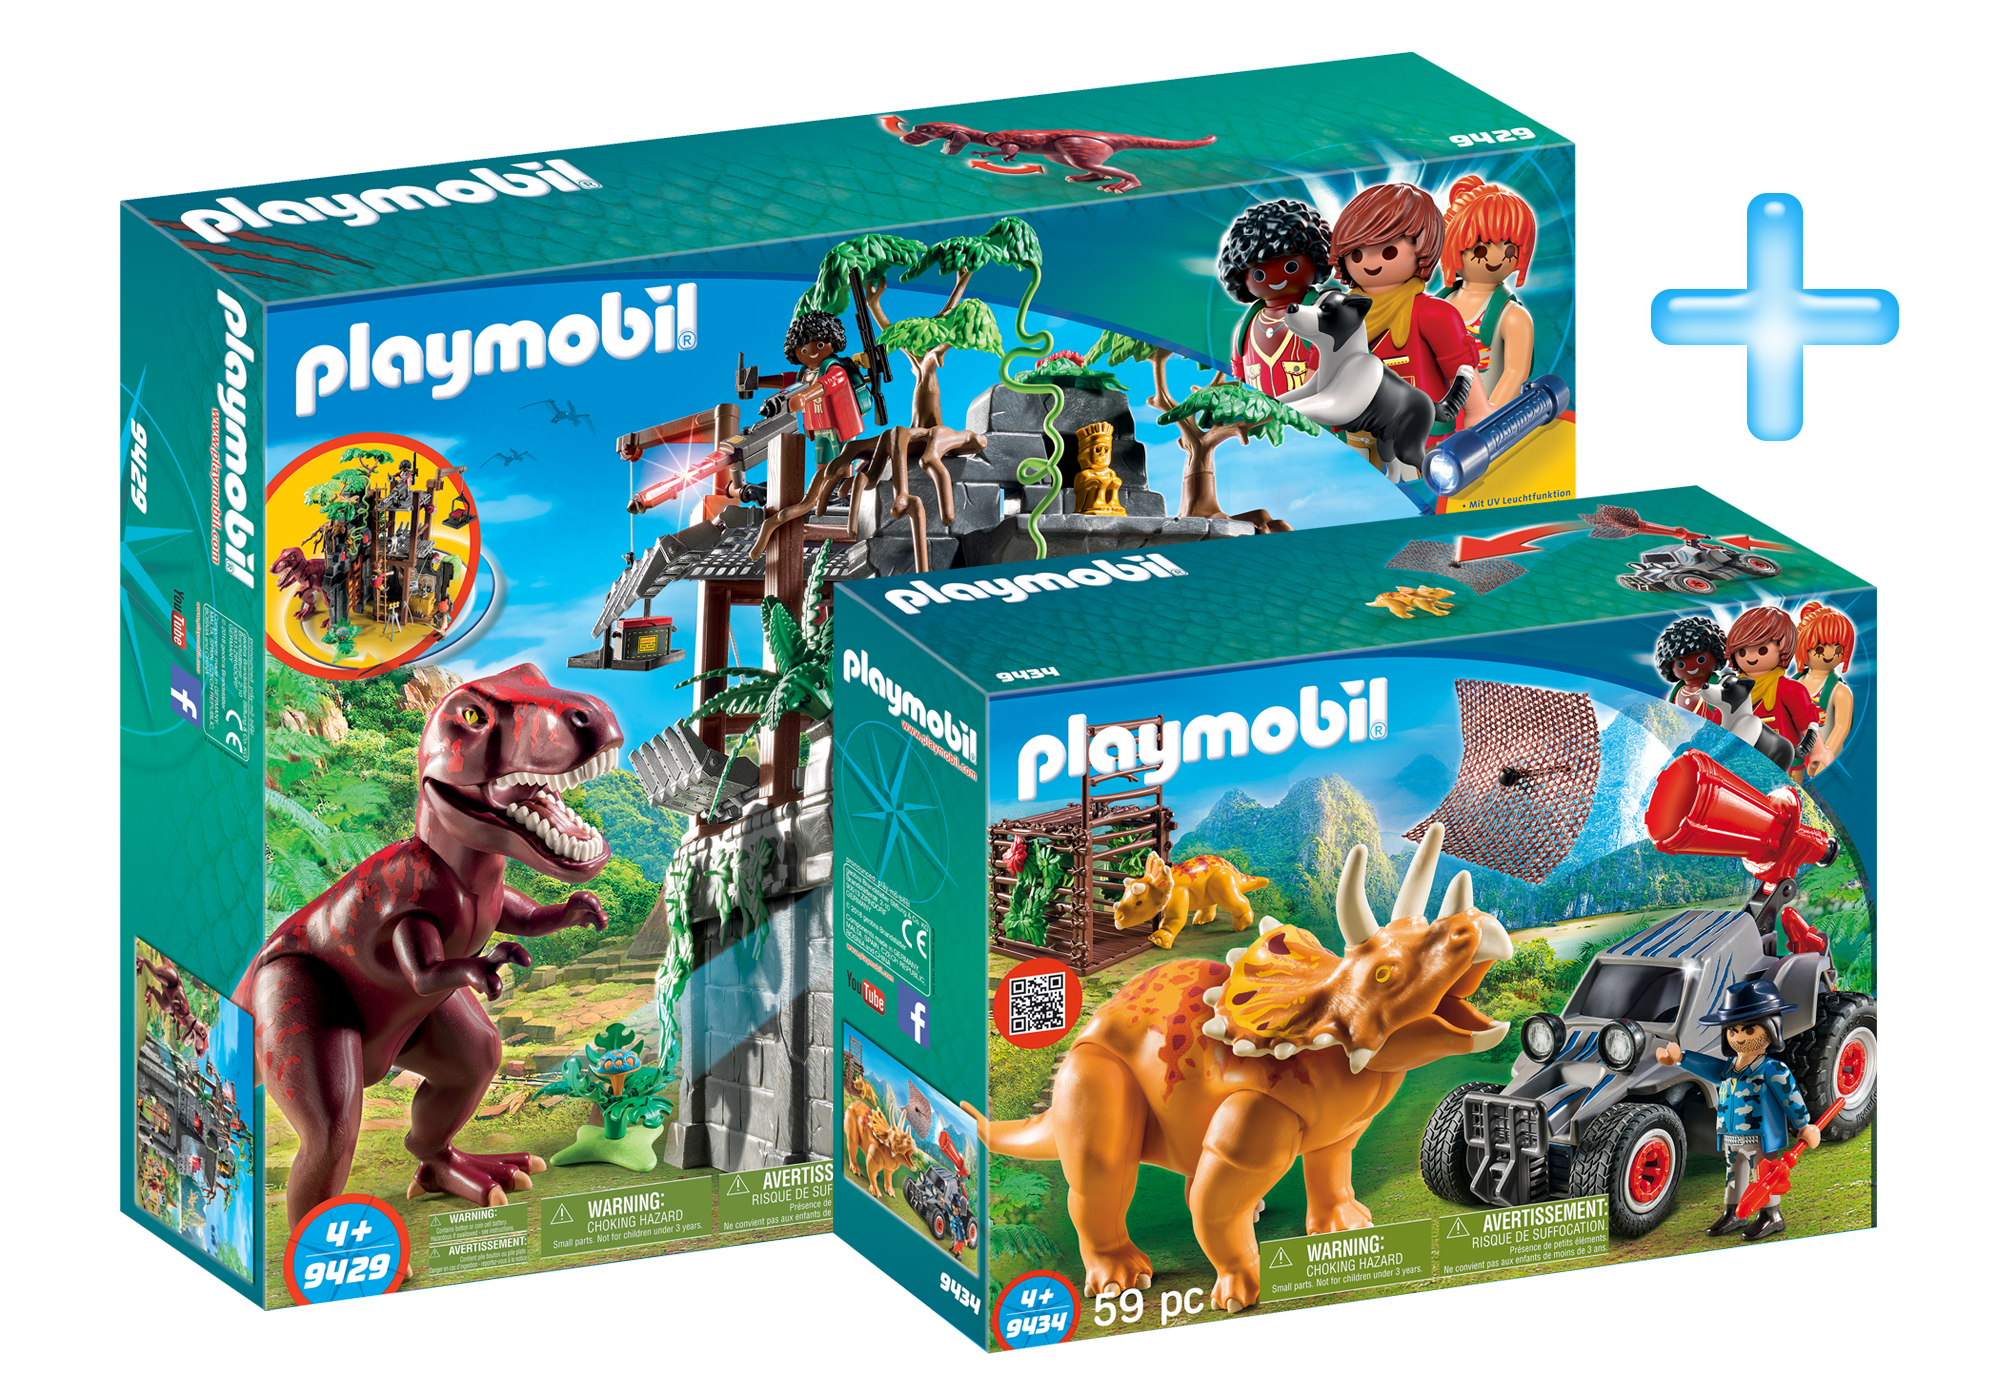 http://media.playmobil.com/i/playmobil/PM1905C_product_detail/Pack Promocional Dinos